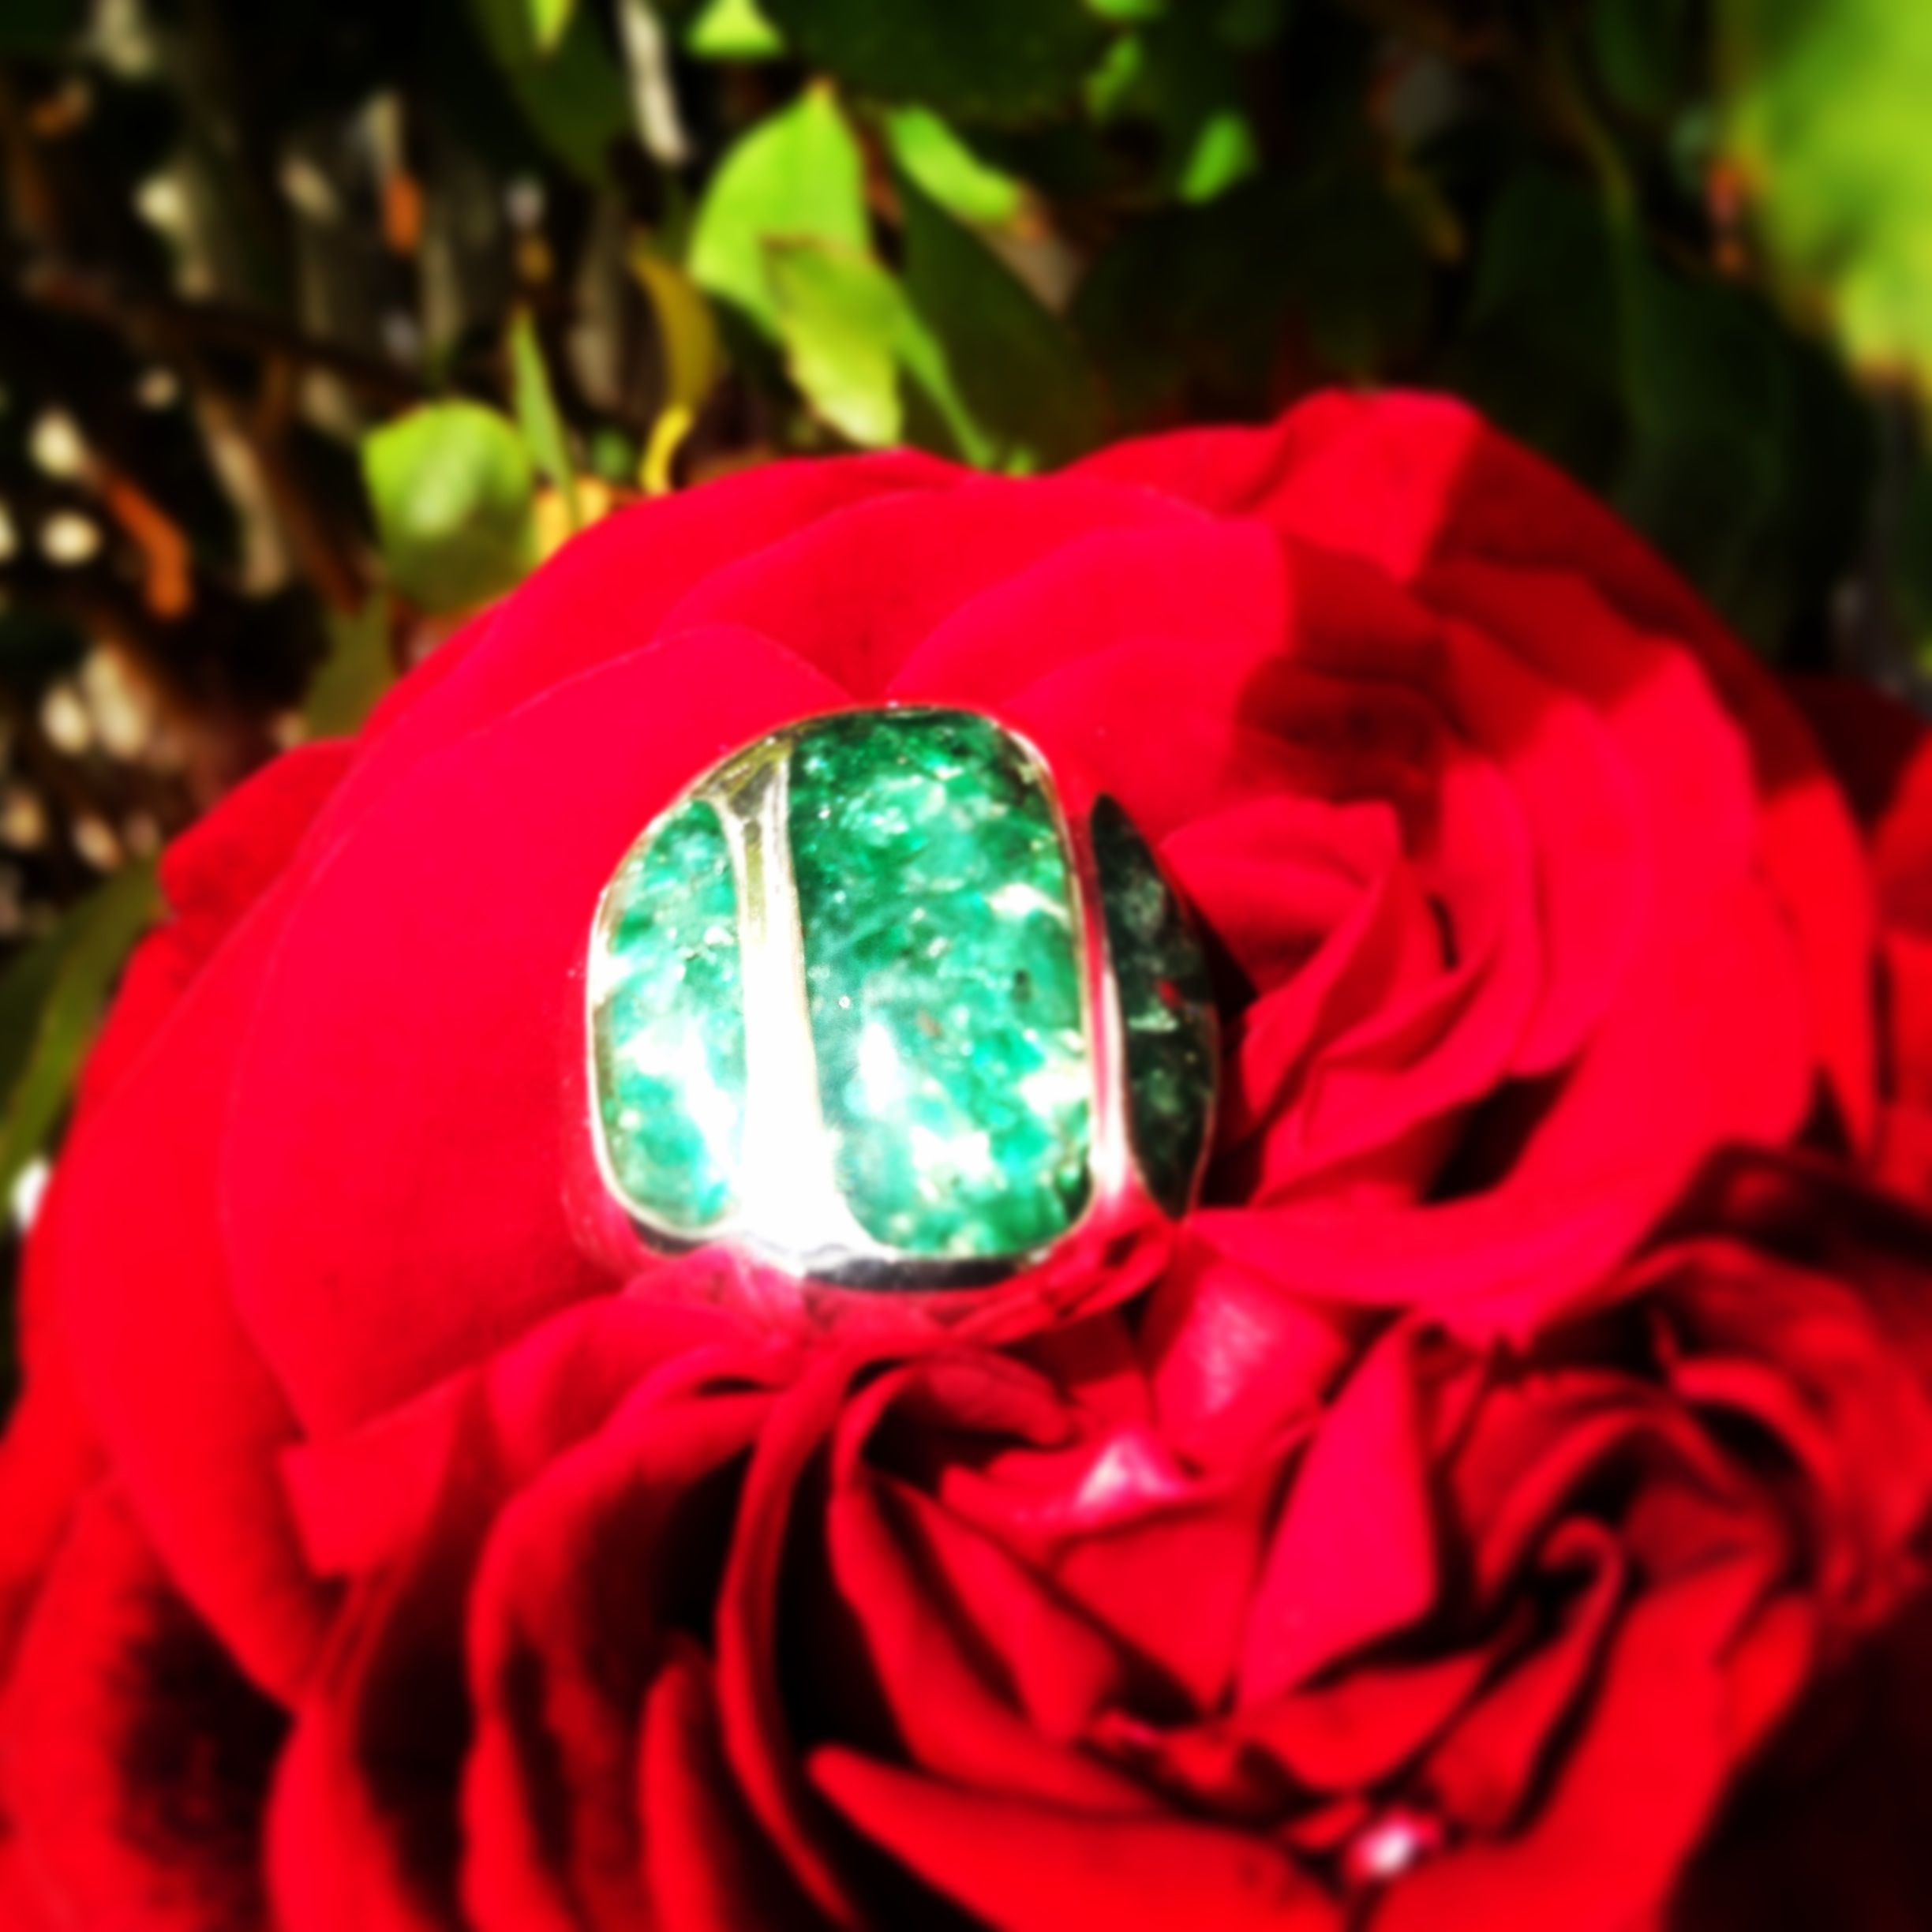 Indulge in sheer sublimity with this luxurious Emerald ring. 5.5 carat of genuine Emerald gemstone fragments inlaid in resin and cradled in a 19mm x 30mm 925 sterling silver ring harmoniously matching its unique design.